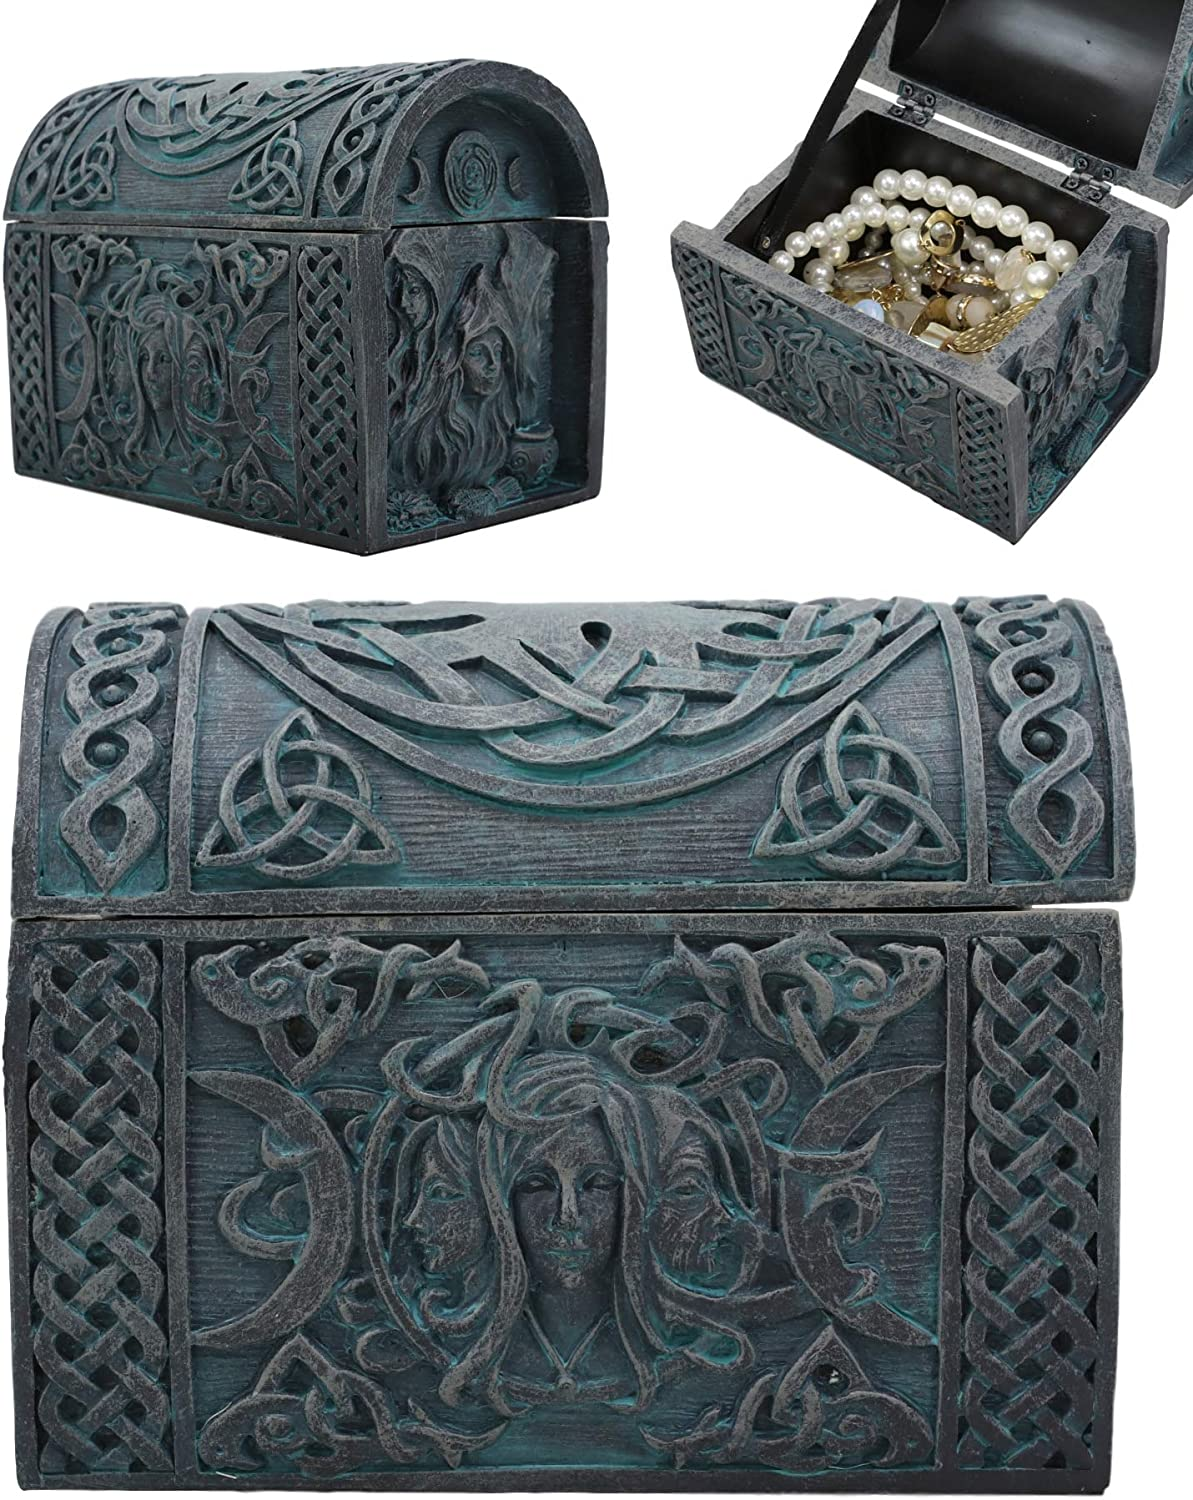 Ebros Celtic Triple Goddess Mother Crone Decorative Jewel Colorado Challenge the lowest price of Japan ☆ Springs Mall Maiden